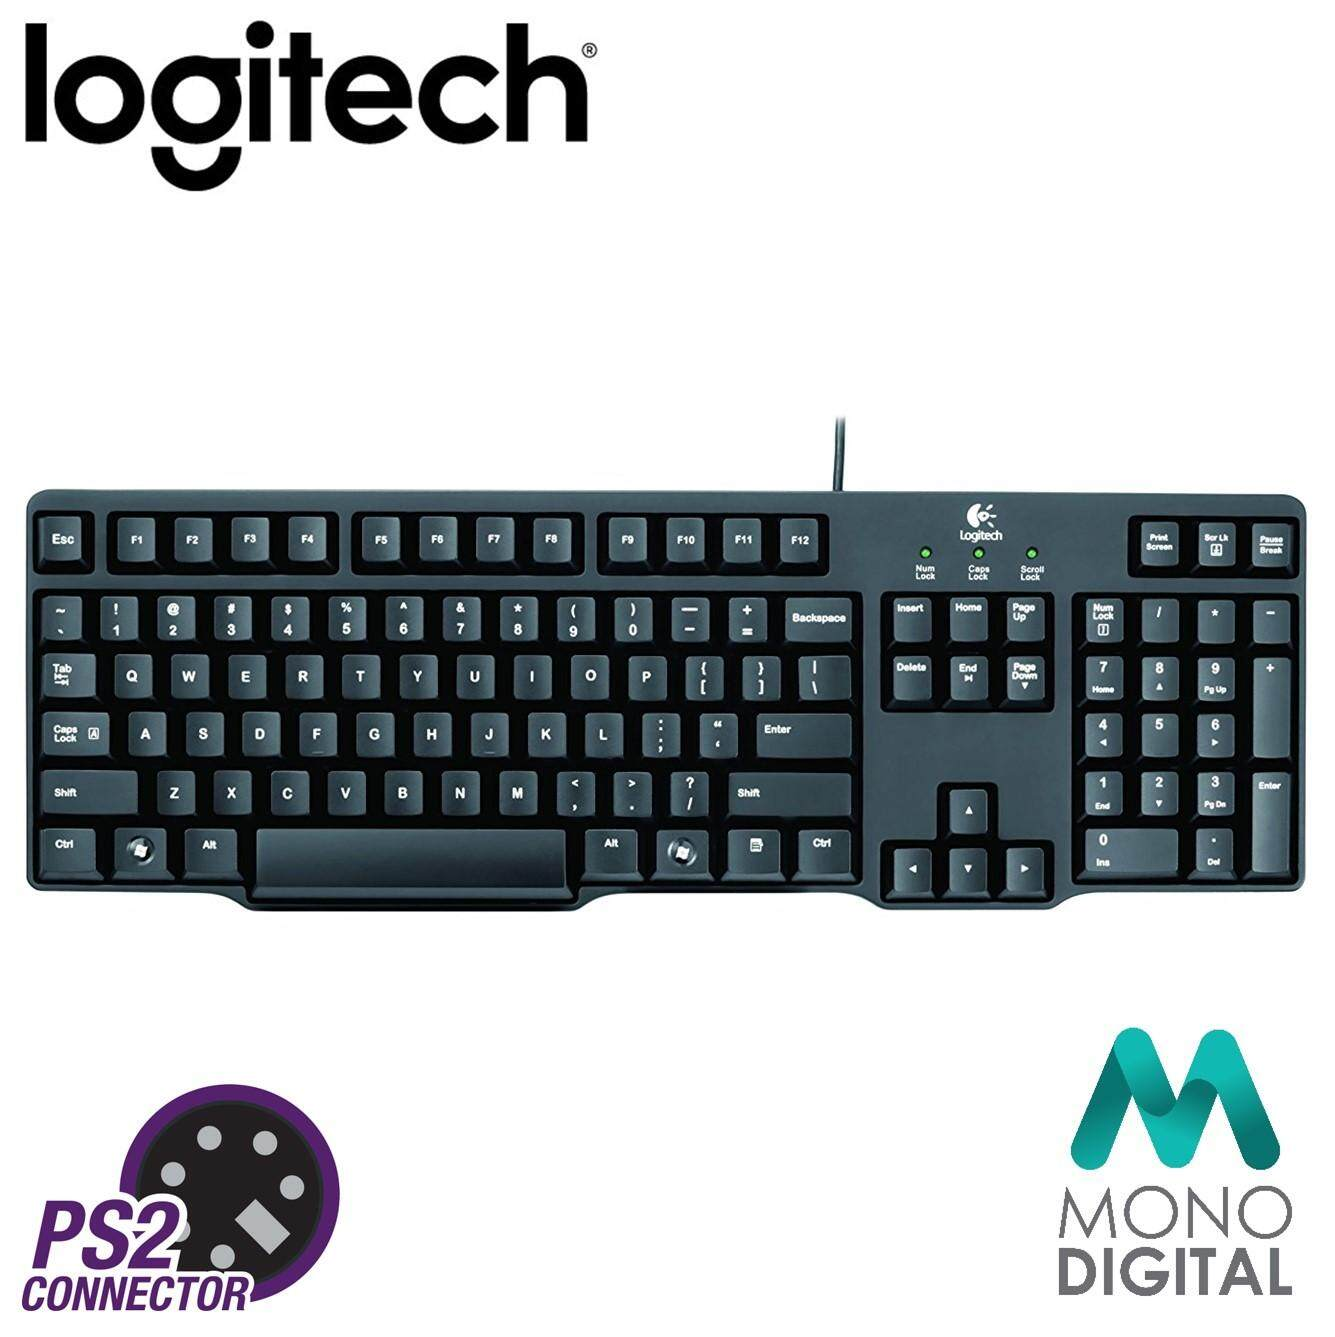 Logitech Classic Pc Ps/2 Keyboard K100 (920-002145) (logitech Malaysia) By Mono Digital.